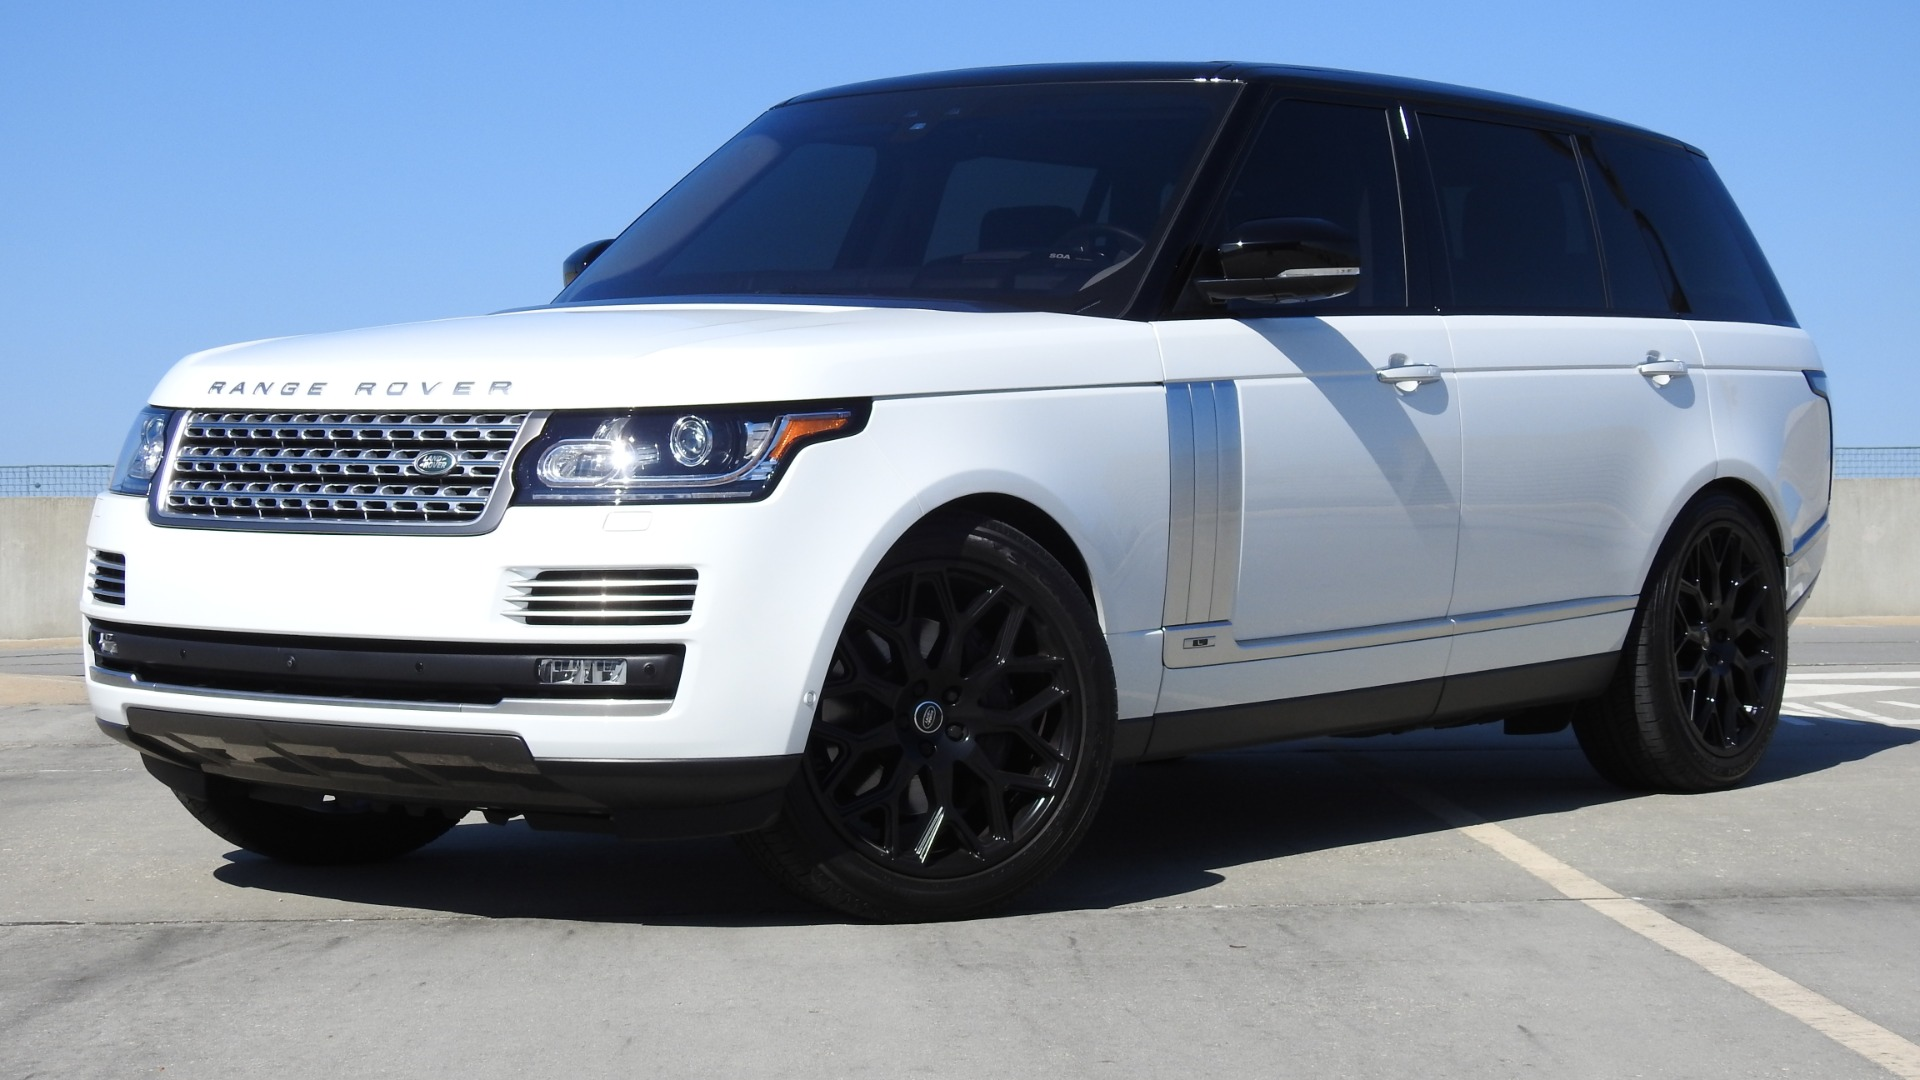 Used-2017-Land-Rover-Range-Rover-Autobiography-LWB-